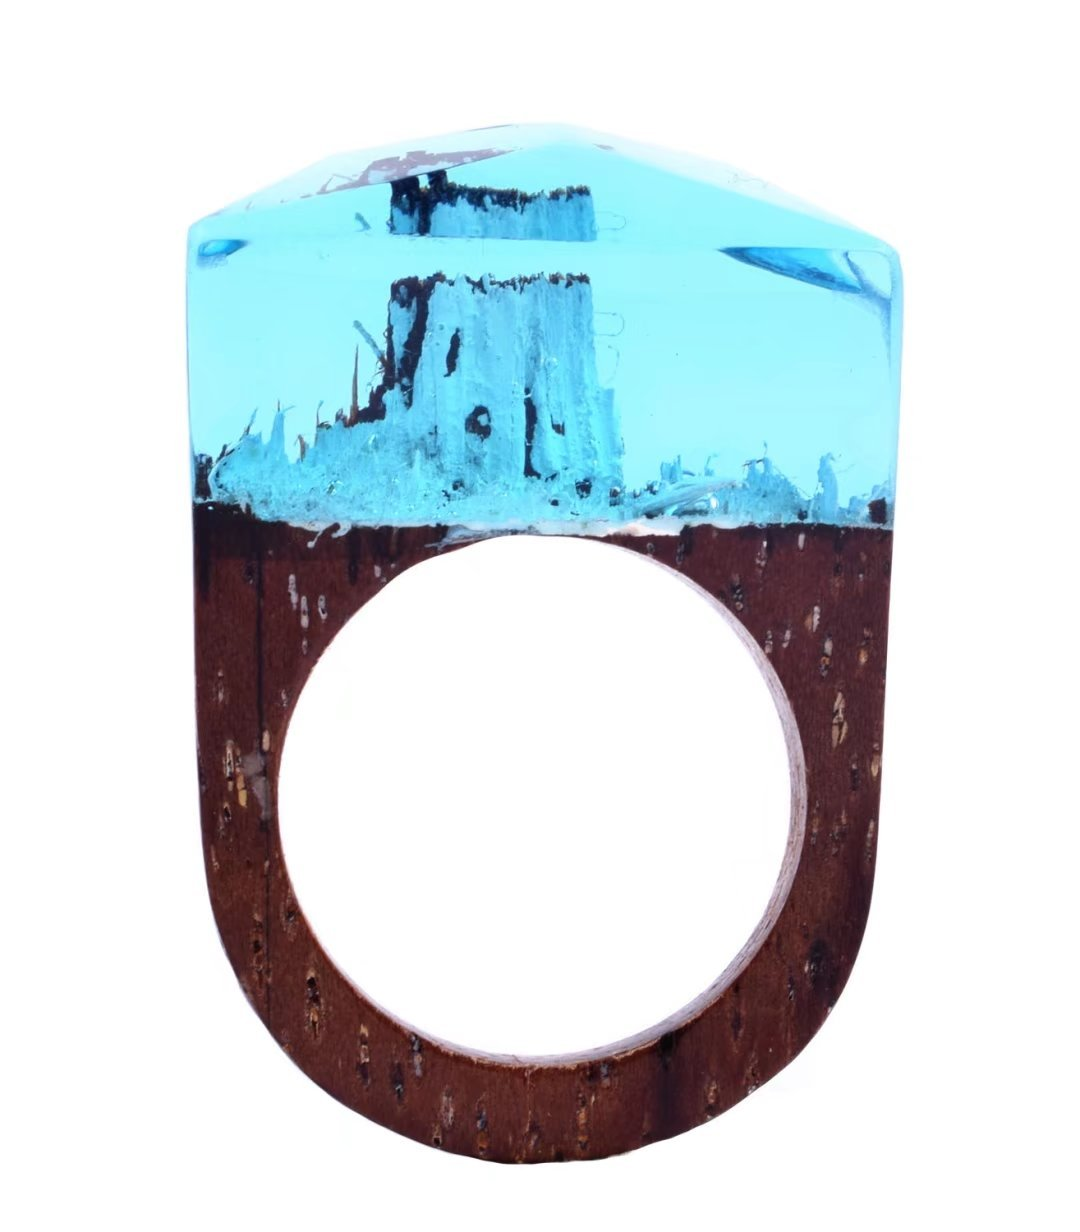 Handmade Wood Resin Ring With Alaska Snow Landscape Inside Jewelry